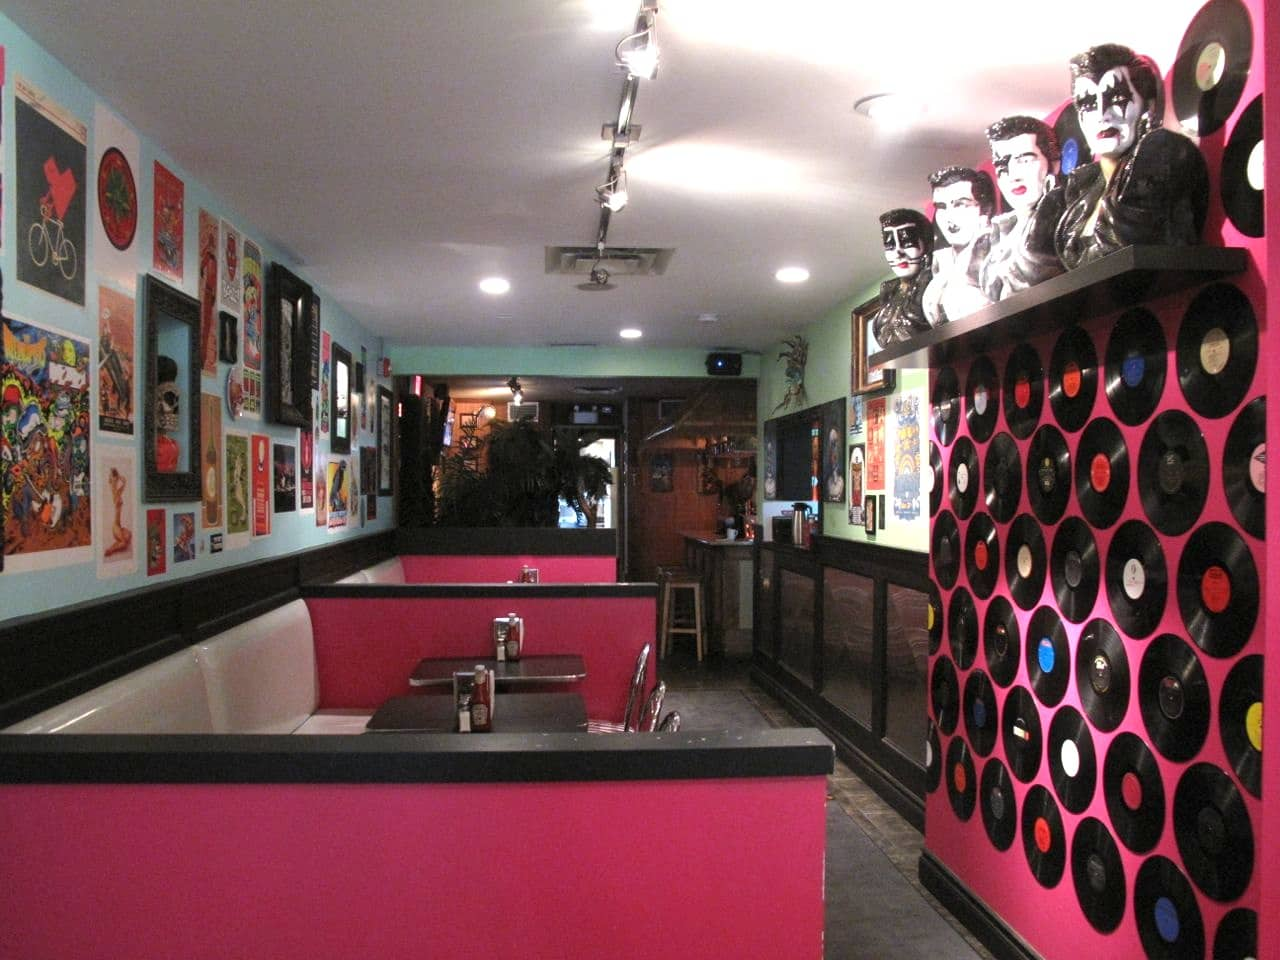 The retro diner dining room at The Early Bird London.